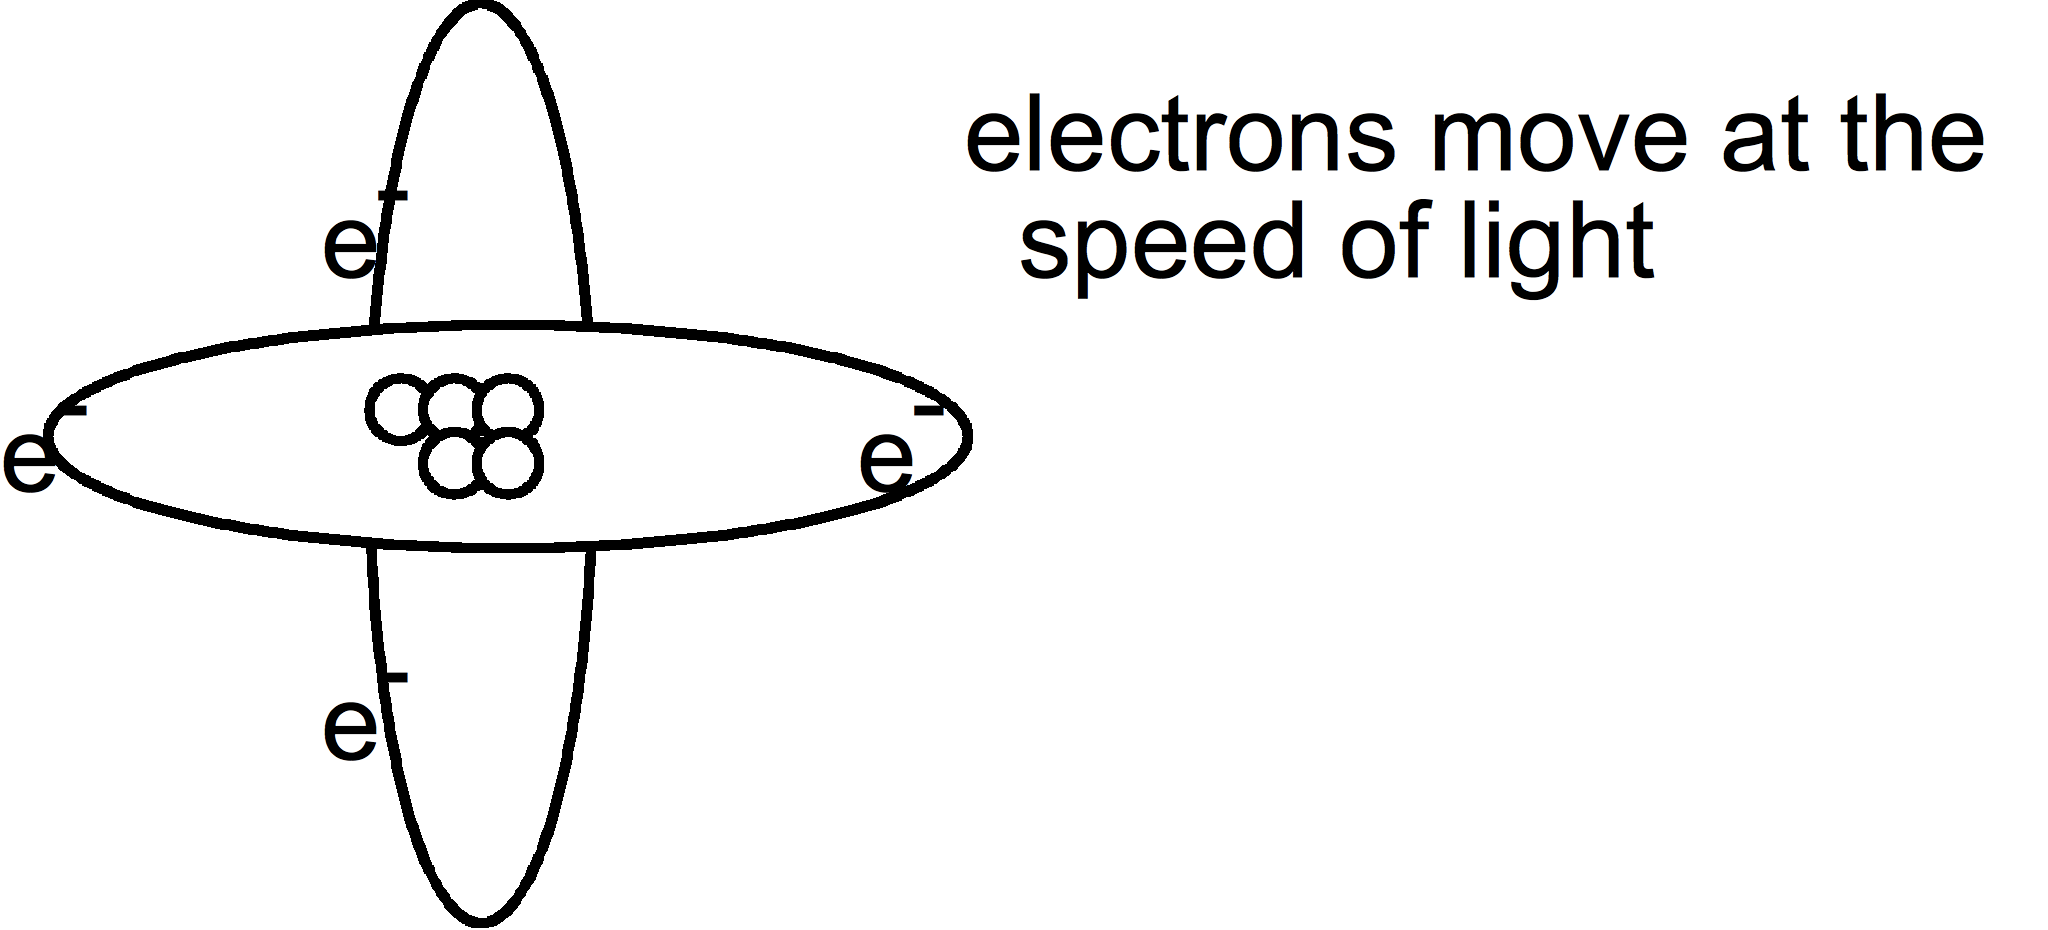 Matter middle school science rocks but there is a problem with this electrons travel at the speed of light 18600miles per second you cant pin point the exact spot where an electron is biocorpaavc Images